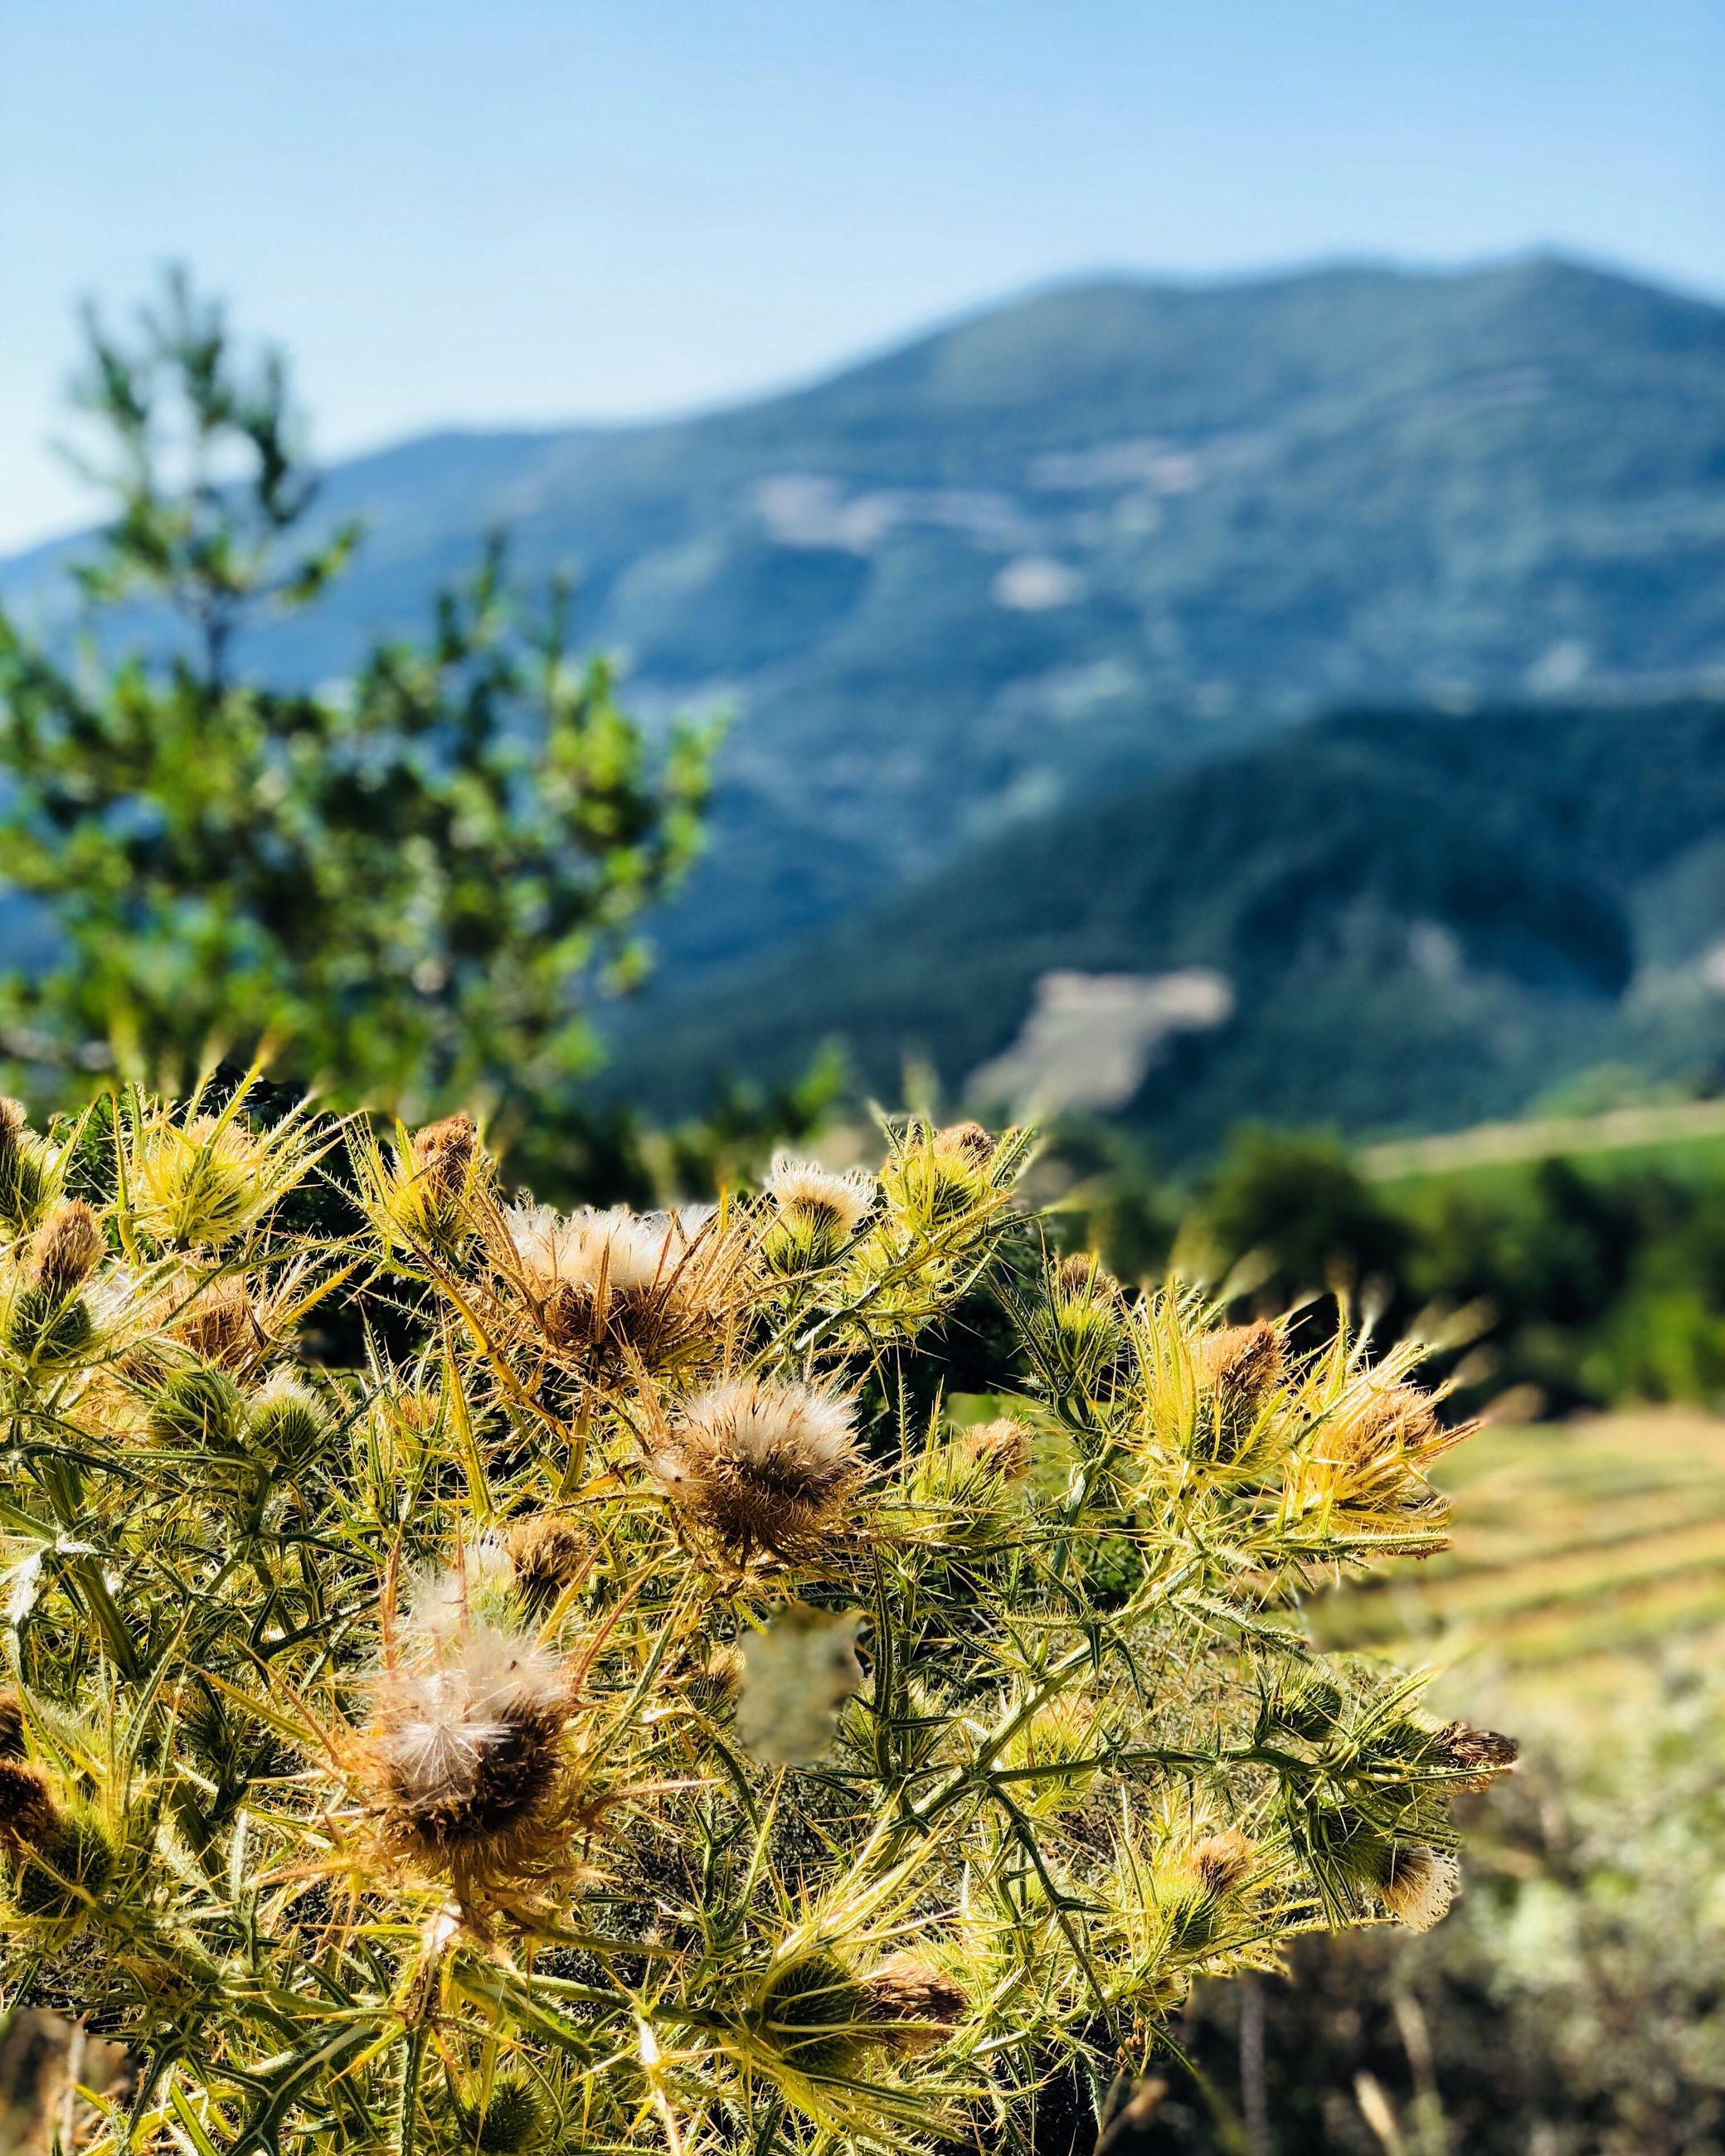 plant, growth, mountain, beauty in nature, nature, day, focus on foreground, no people, close-up, scenics - nature, tranquility, outdoors, flower, flowering plant, sunlight, freshness, cactus, green color, succulent plant, tranquil scene, flower head